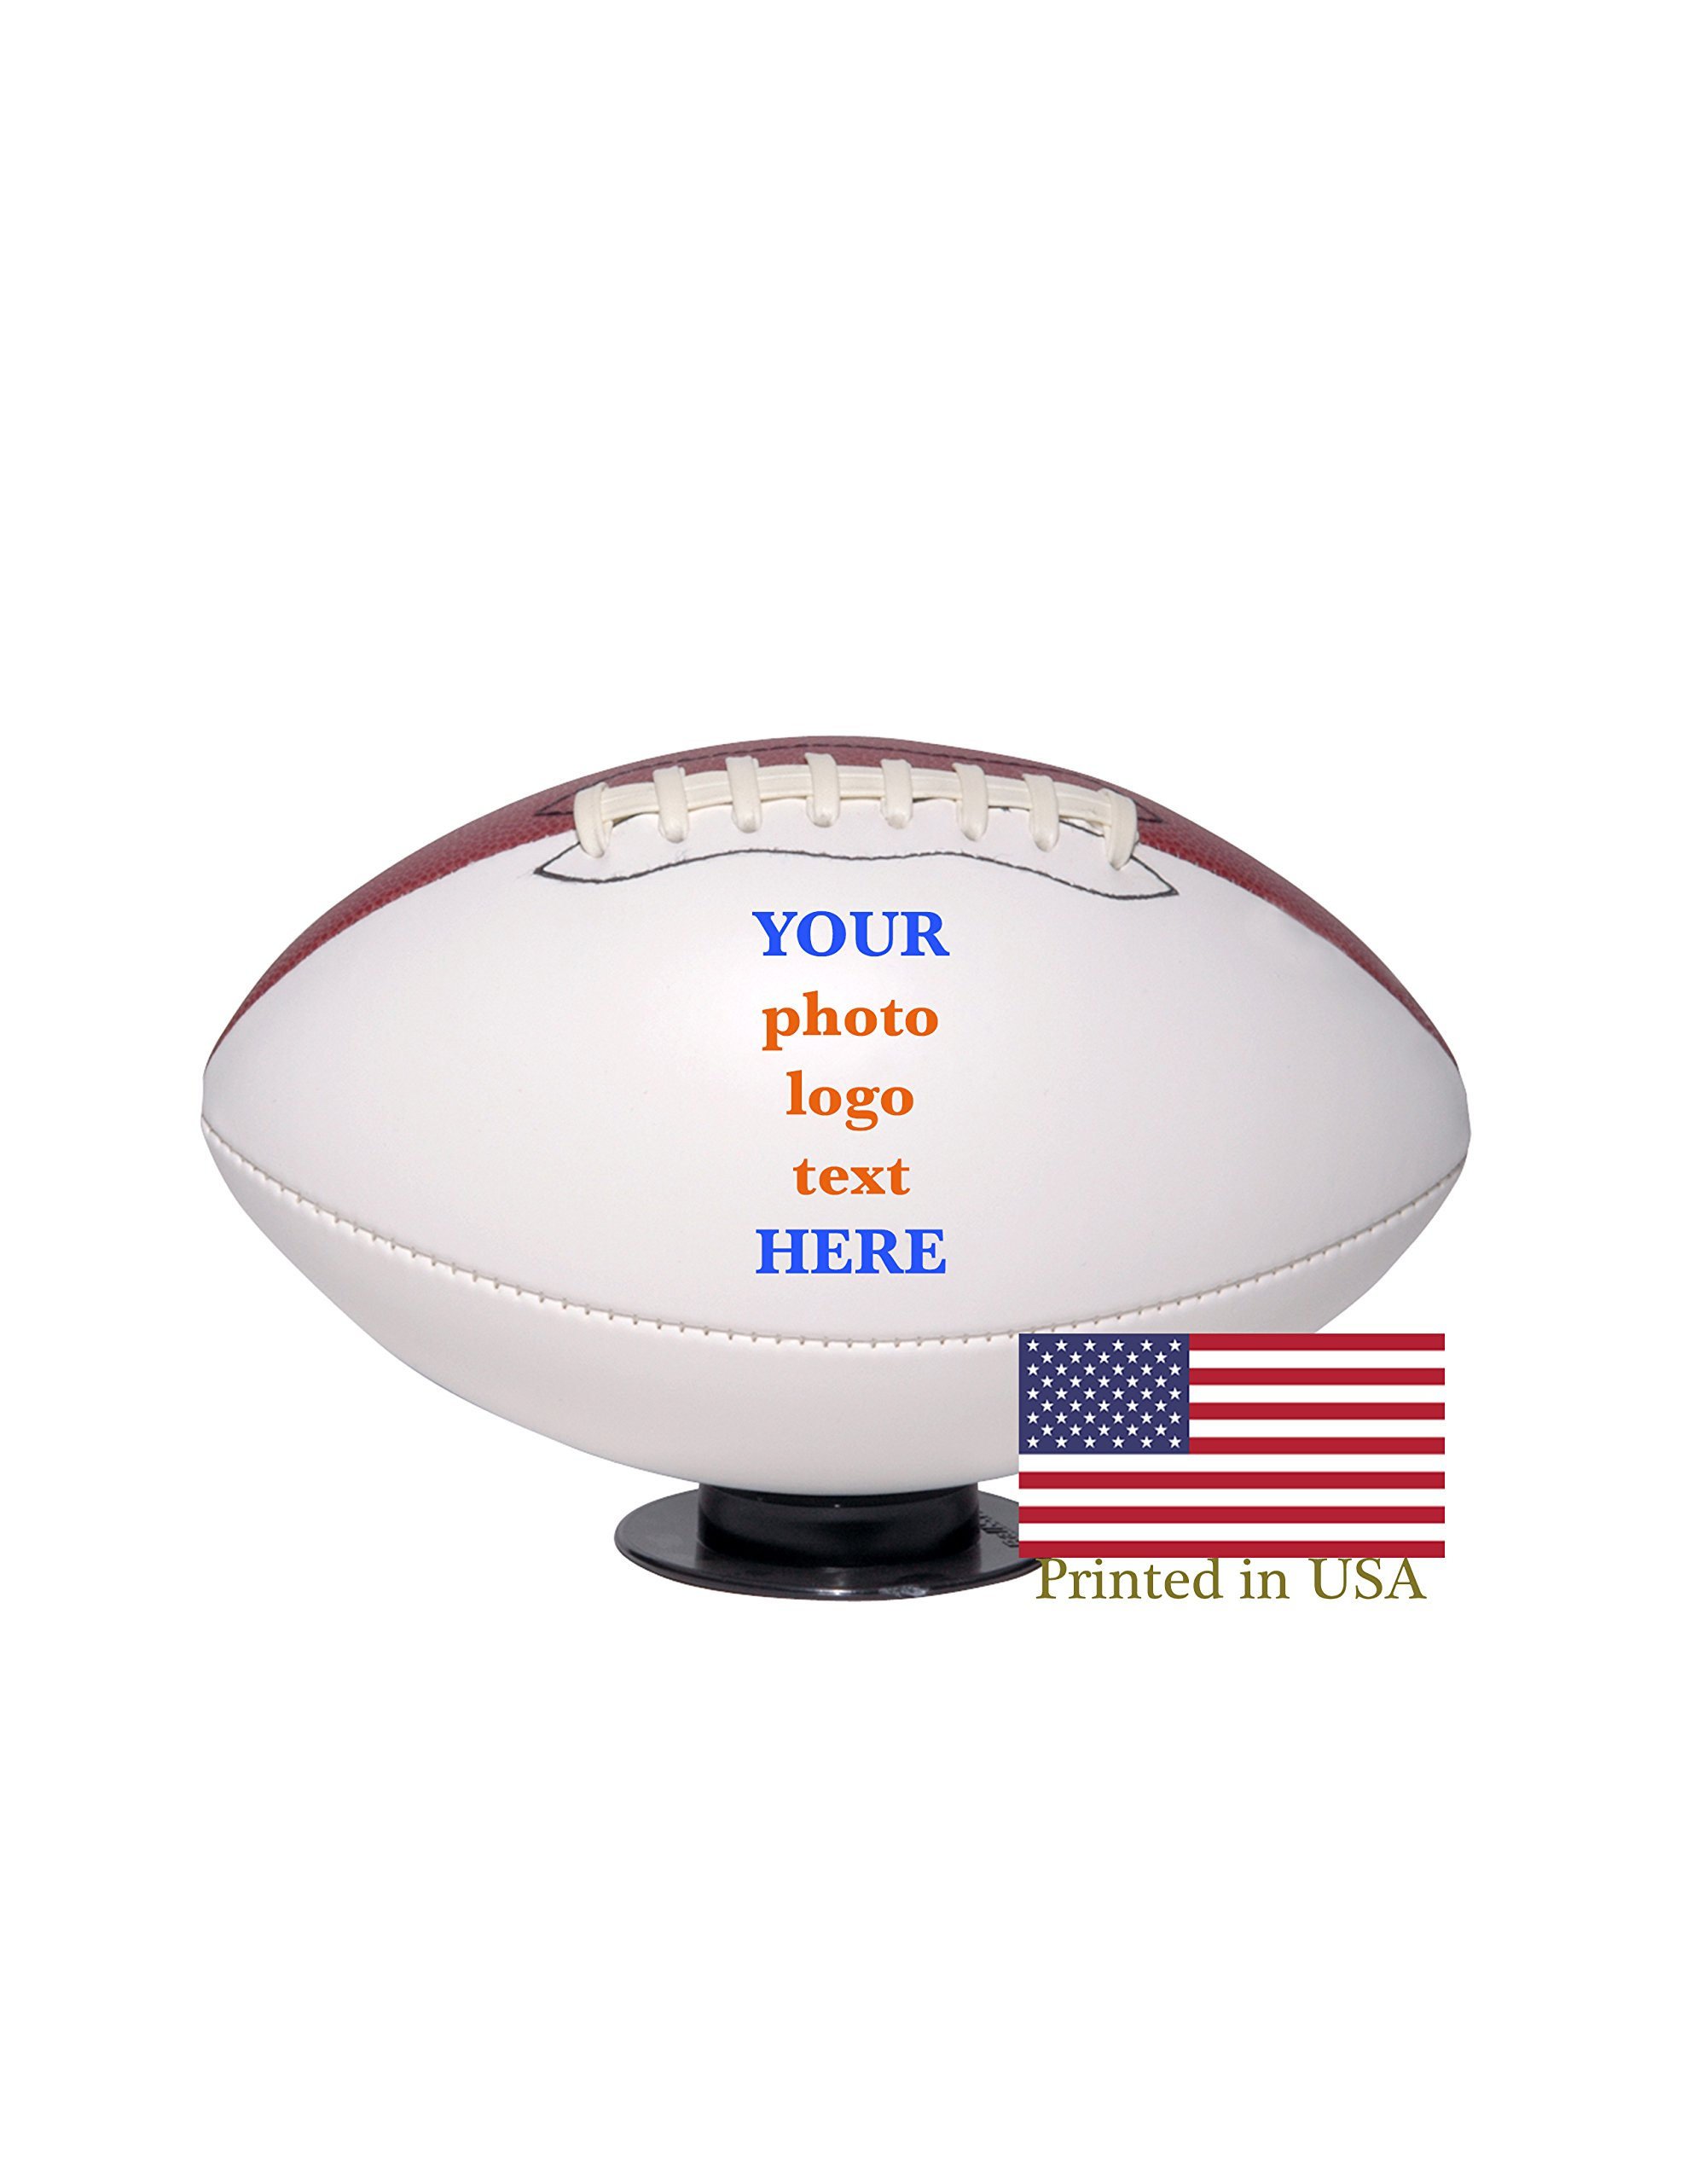 Custom Personalized Football Ships in 1 Day, High Resolution Photos, Logos & Text on Football Balls Players, Trophies, MVP Awards, Coaches, Personalized Gifts